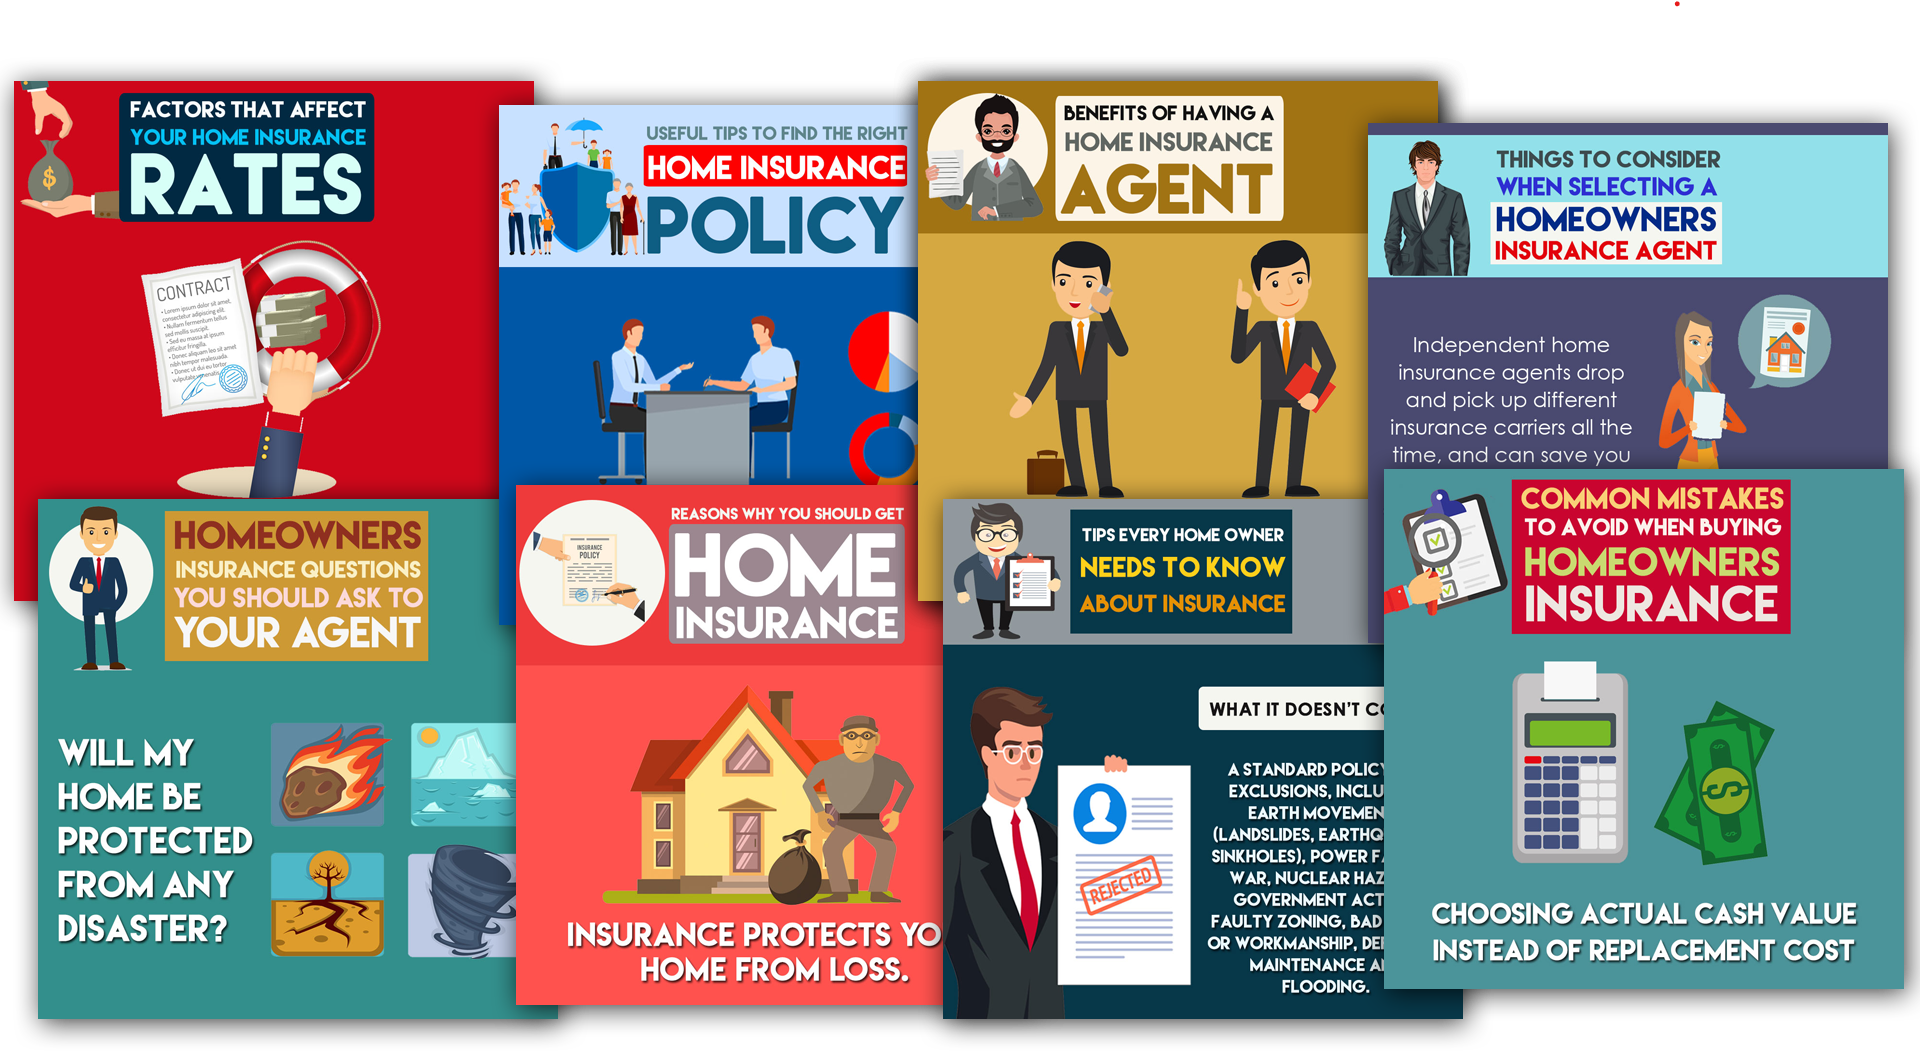 Home Insurance Agent